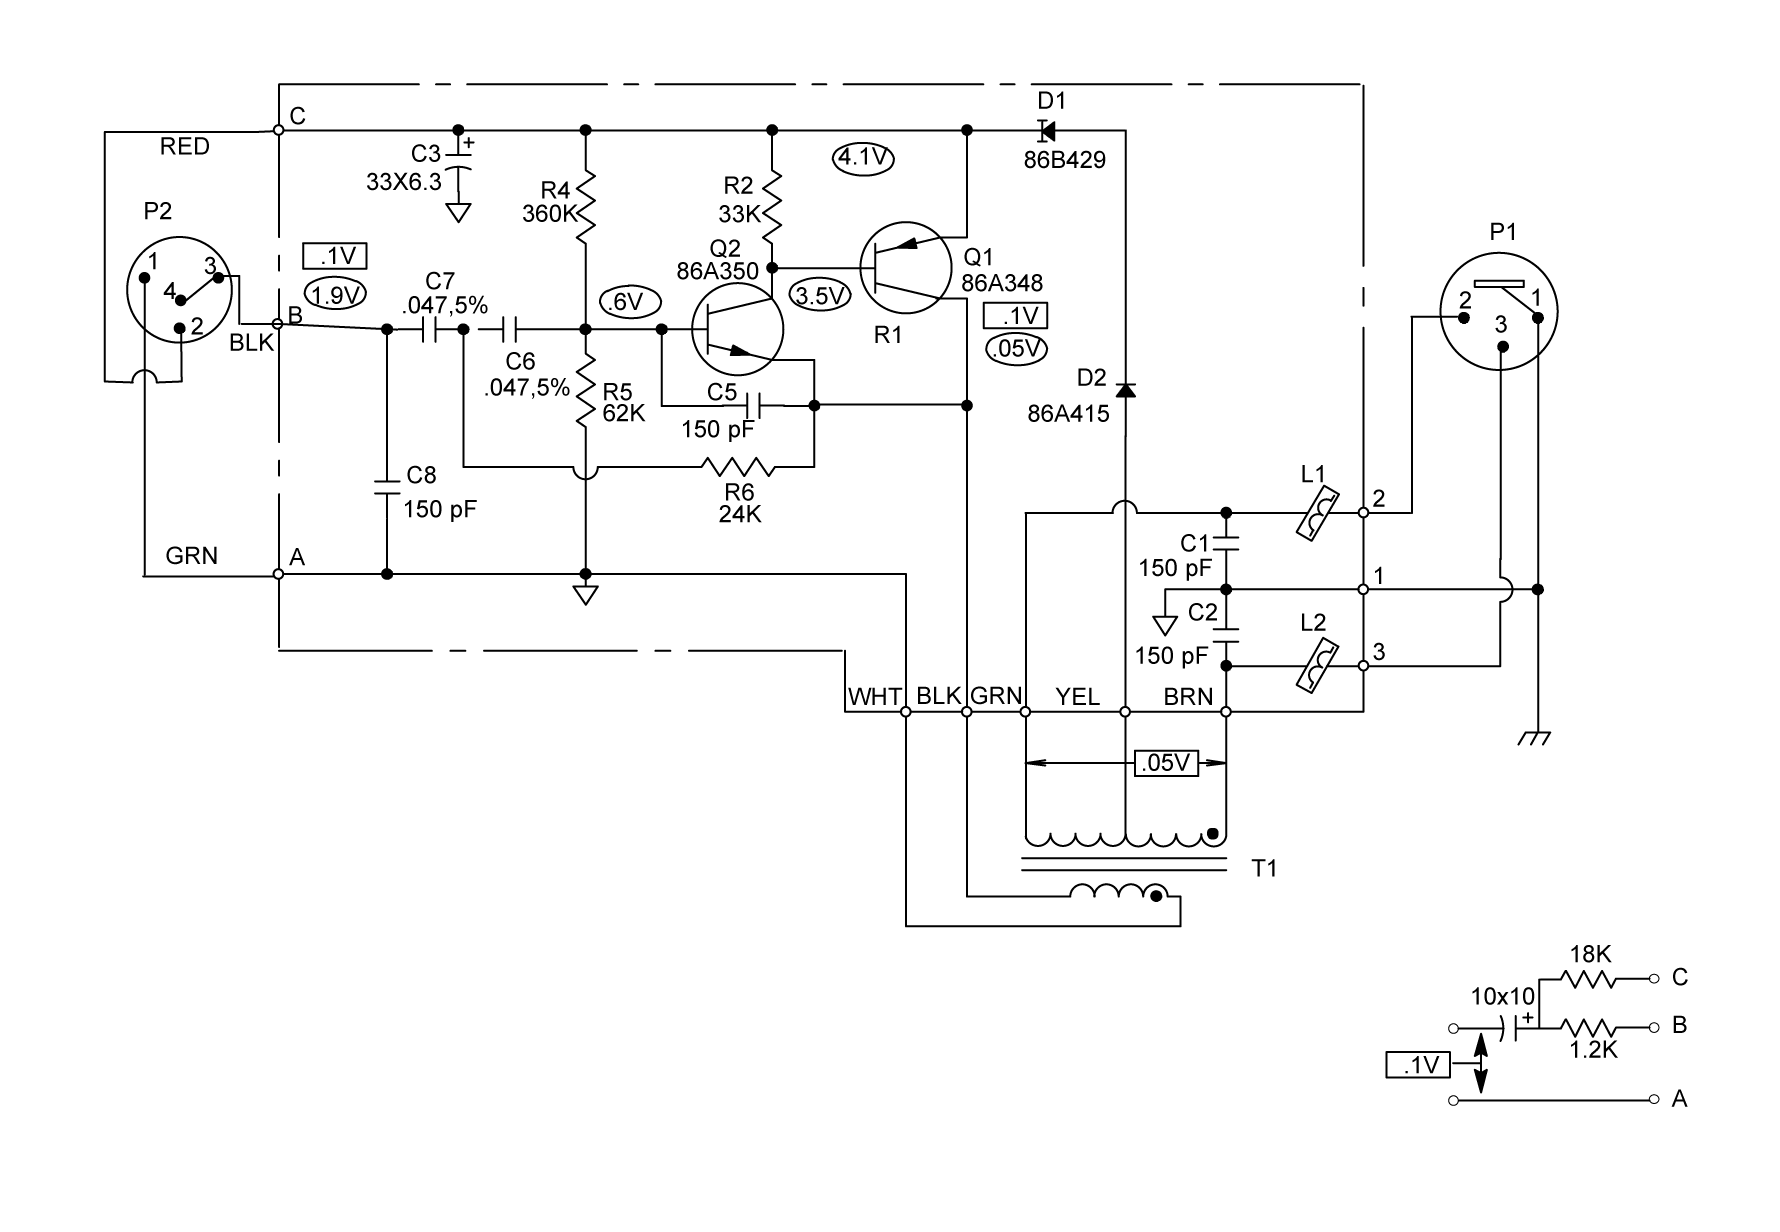 hight resolution of shure 444 microphone wiring diagram hecho wiring diagram technic shure 444 mic wiring diagram